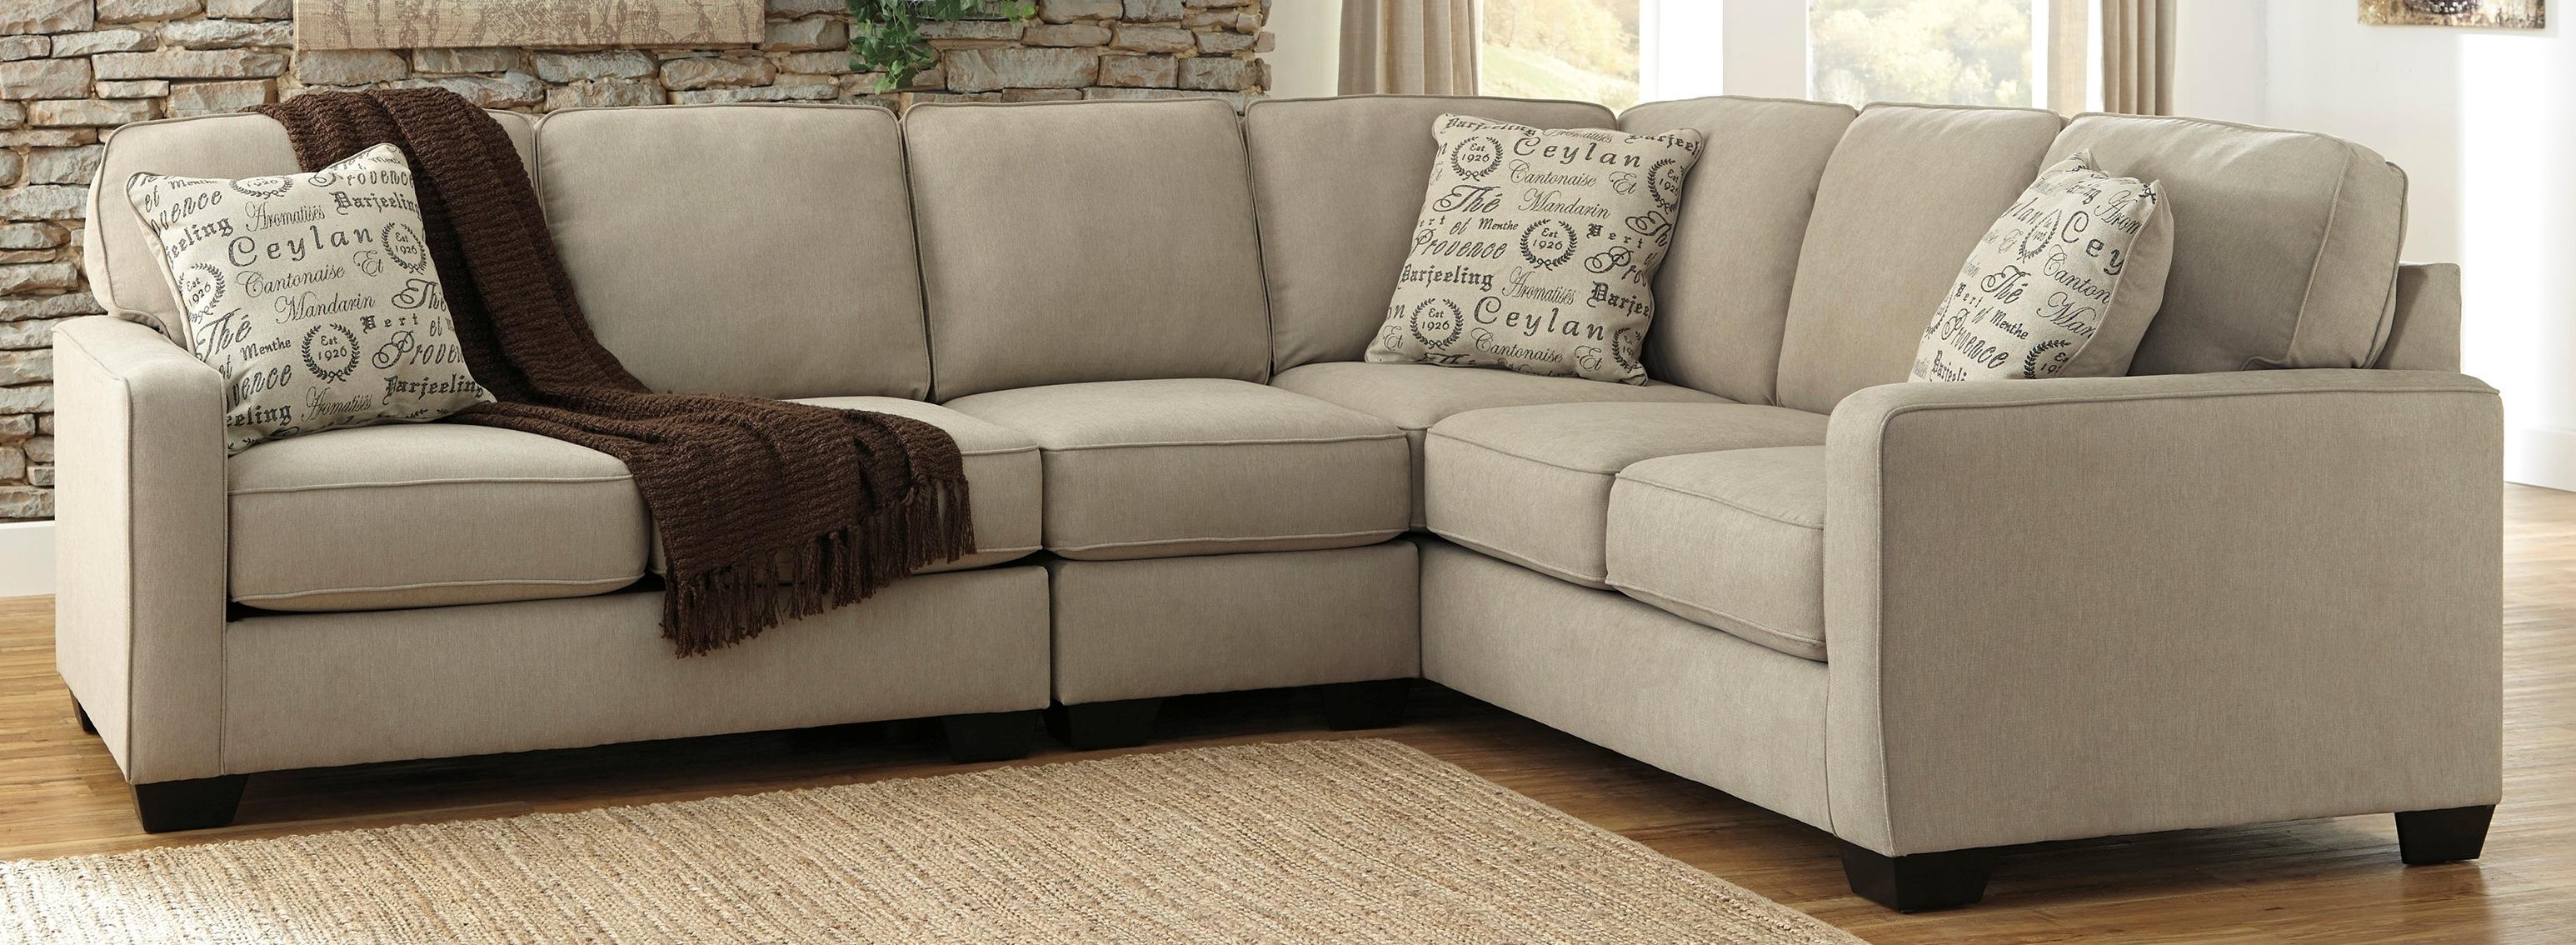 Living Room: Comfortable Ashley Furniture Sectionals For Lovely With Ashley Furniture Brown Corduroy Sectional Sofas (View 19 of 20)